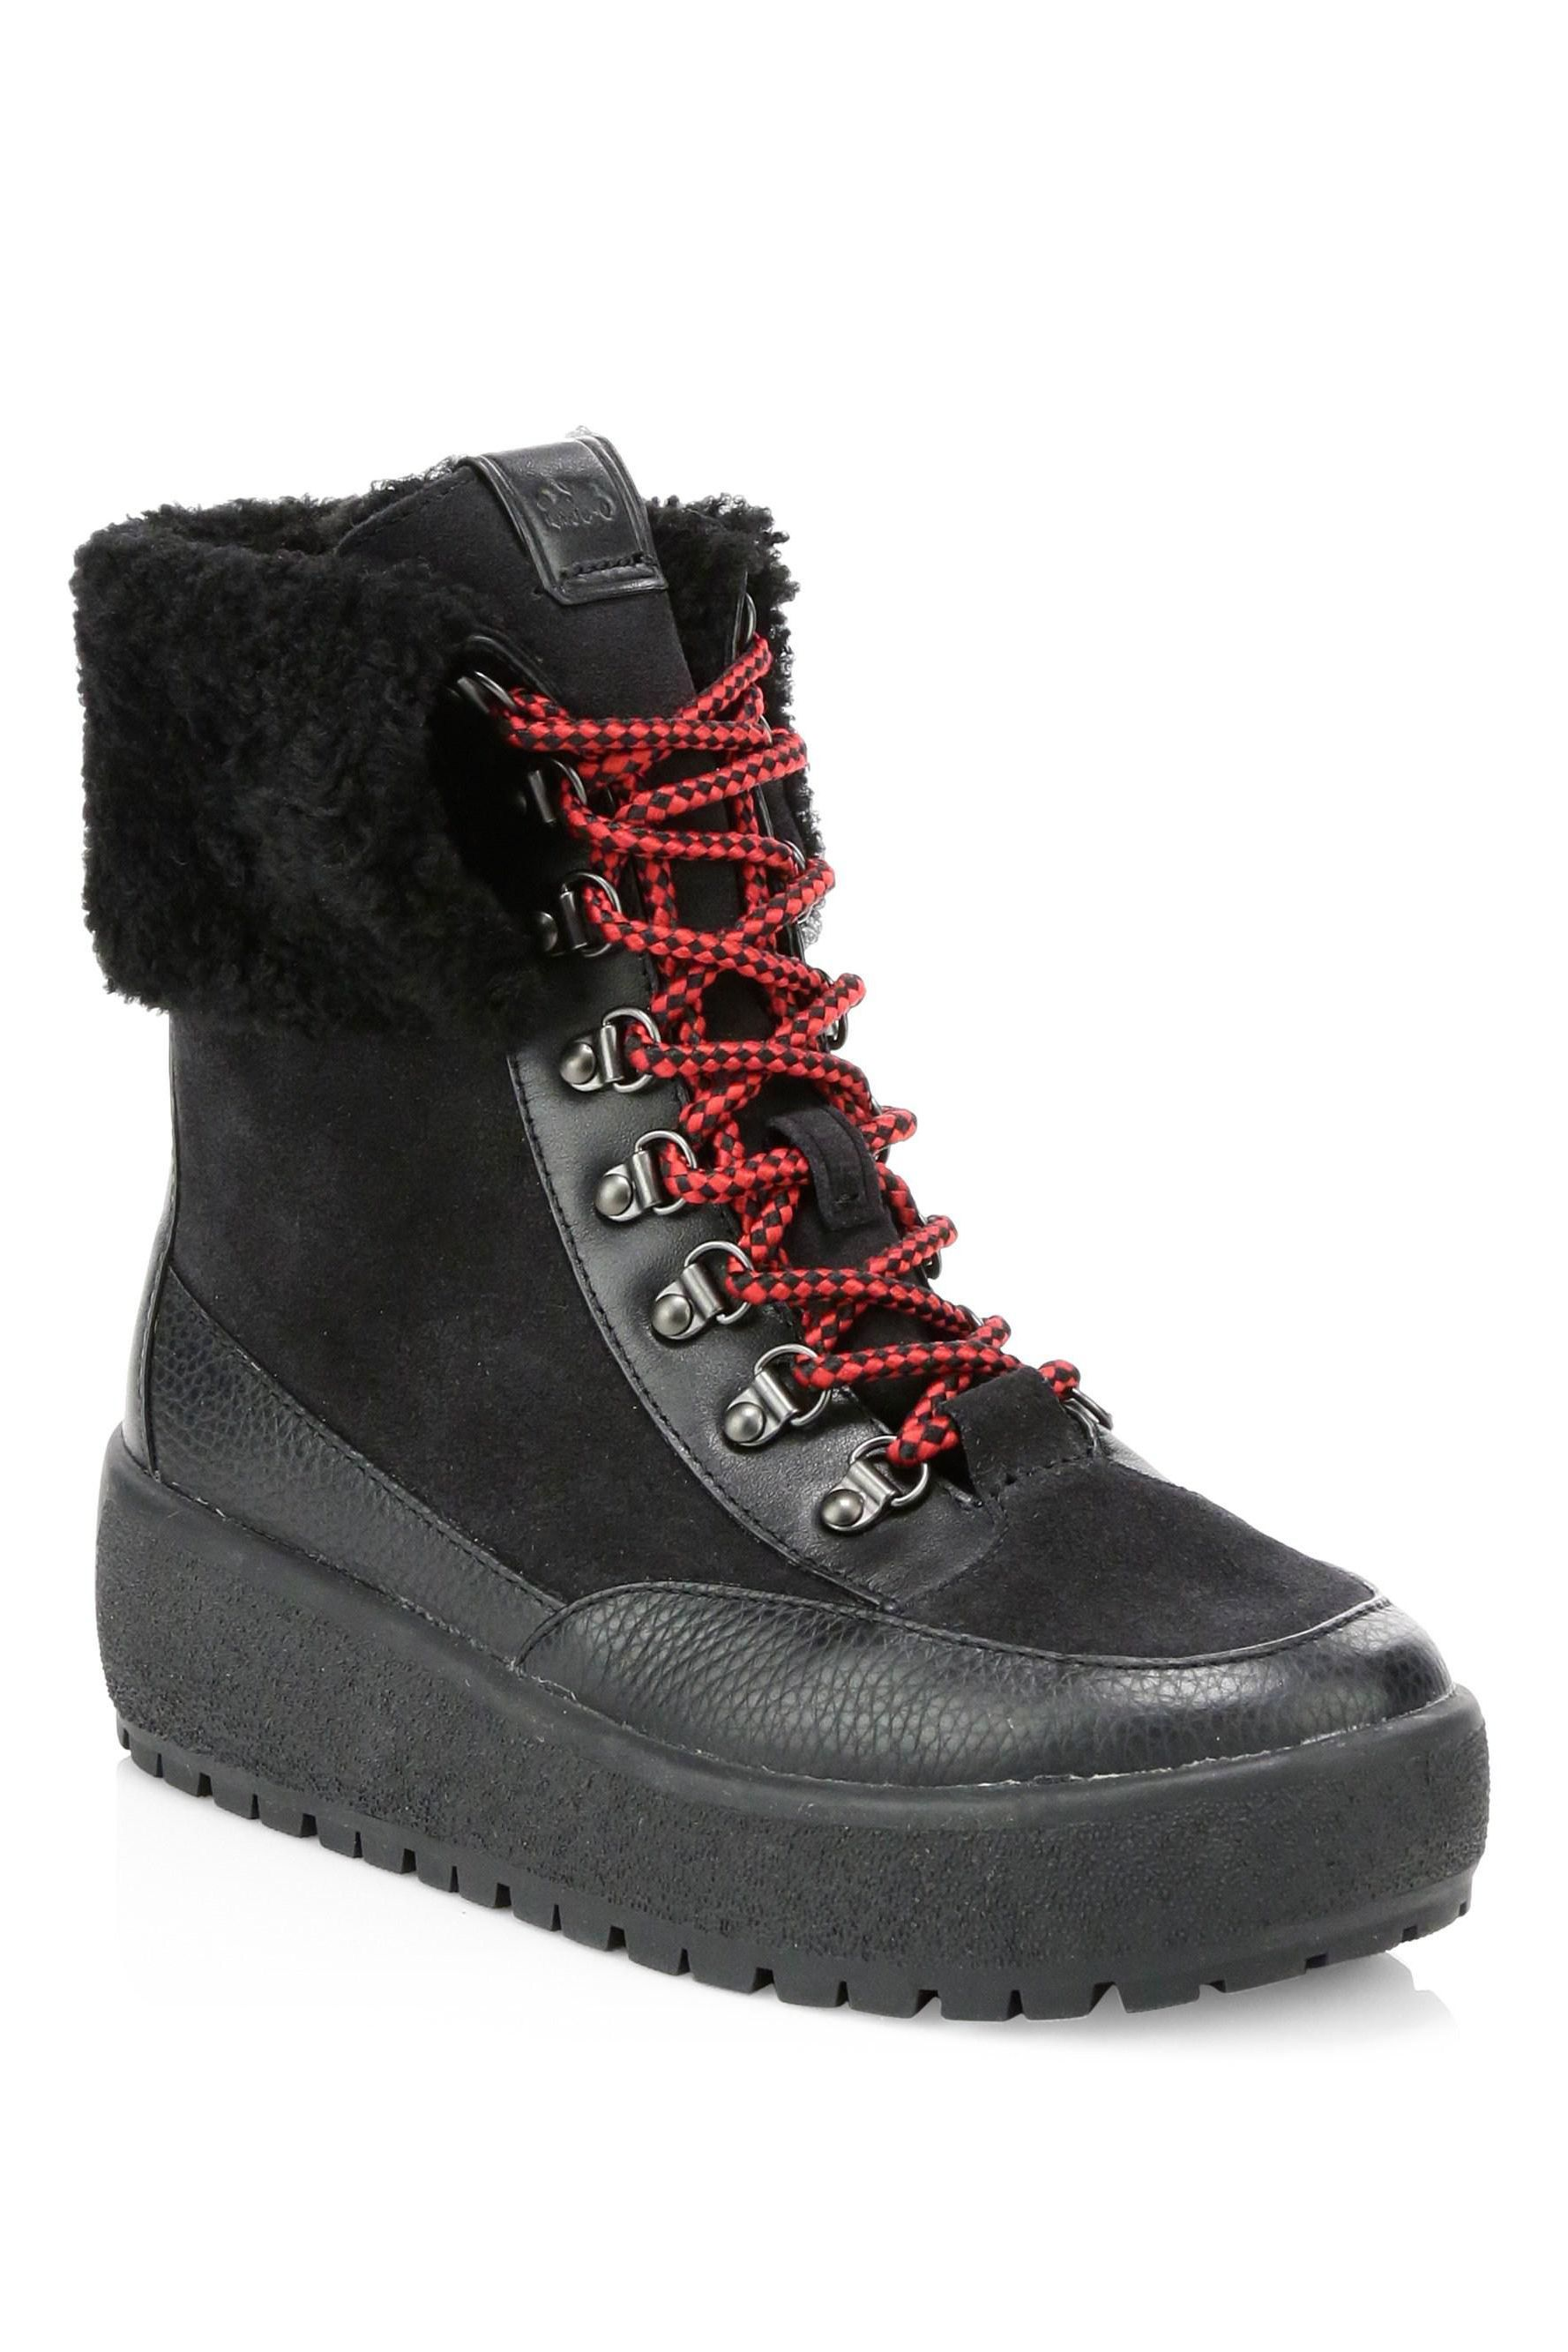 e3d53d3d727e The 18 Best Snow Boots - Cute Winter Boot Styles